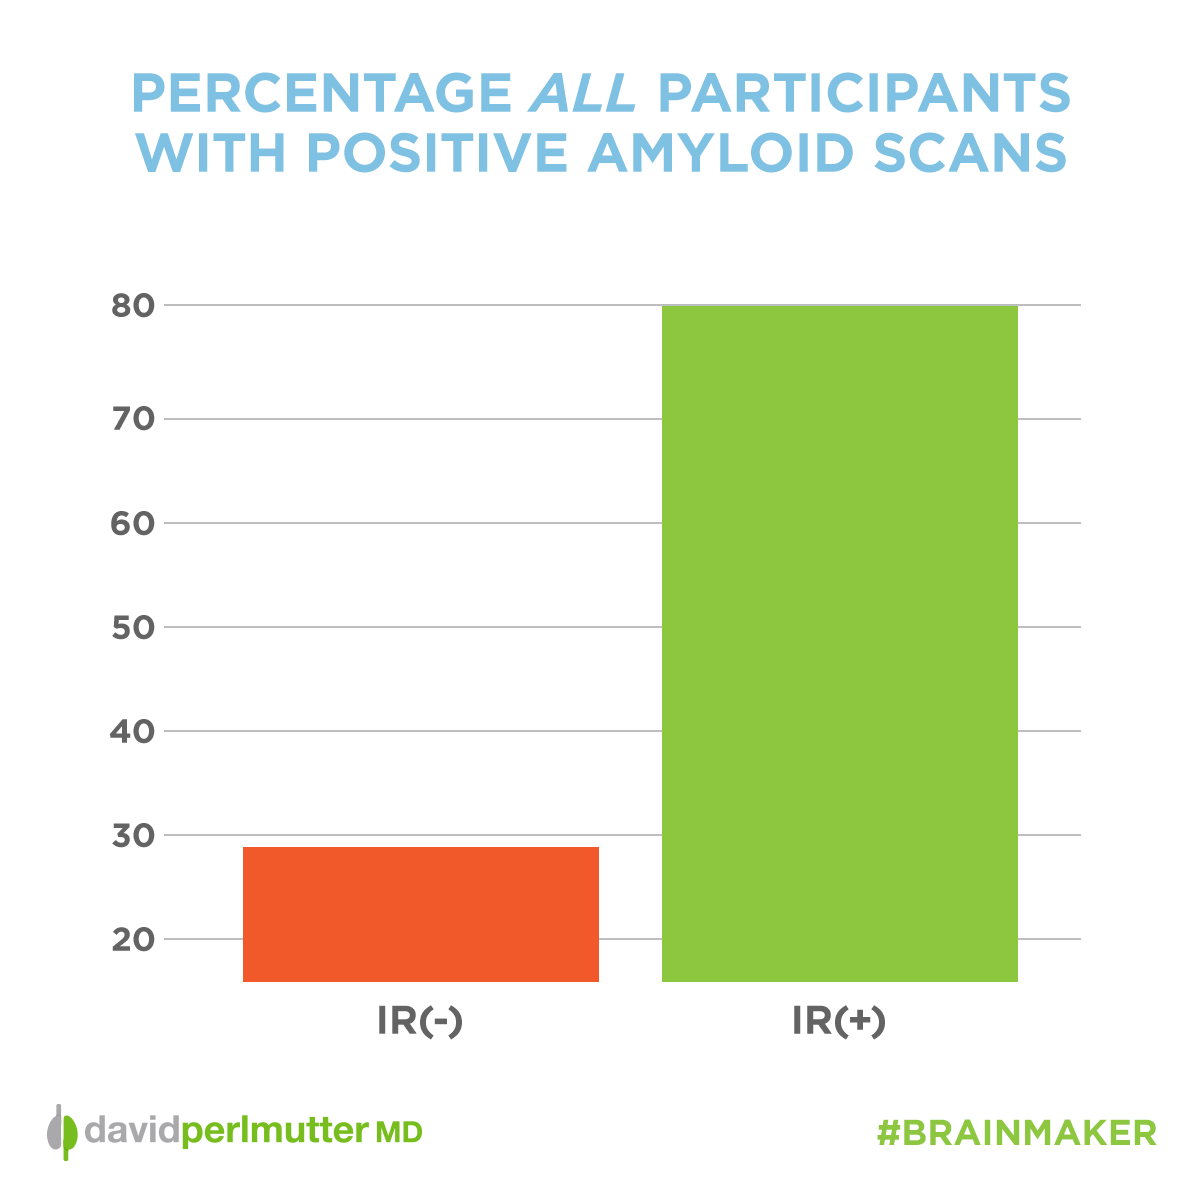 Blog-Image-Percentage-All-Participants-With-Positive-Amyloid-Scans-Perlmutter-Square